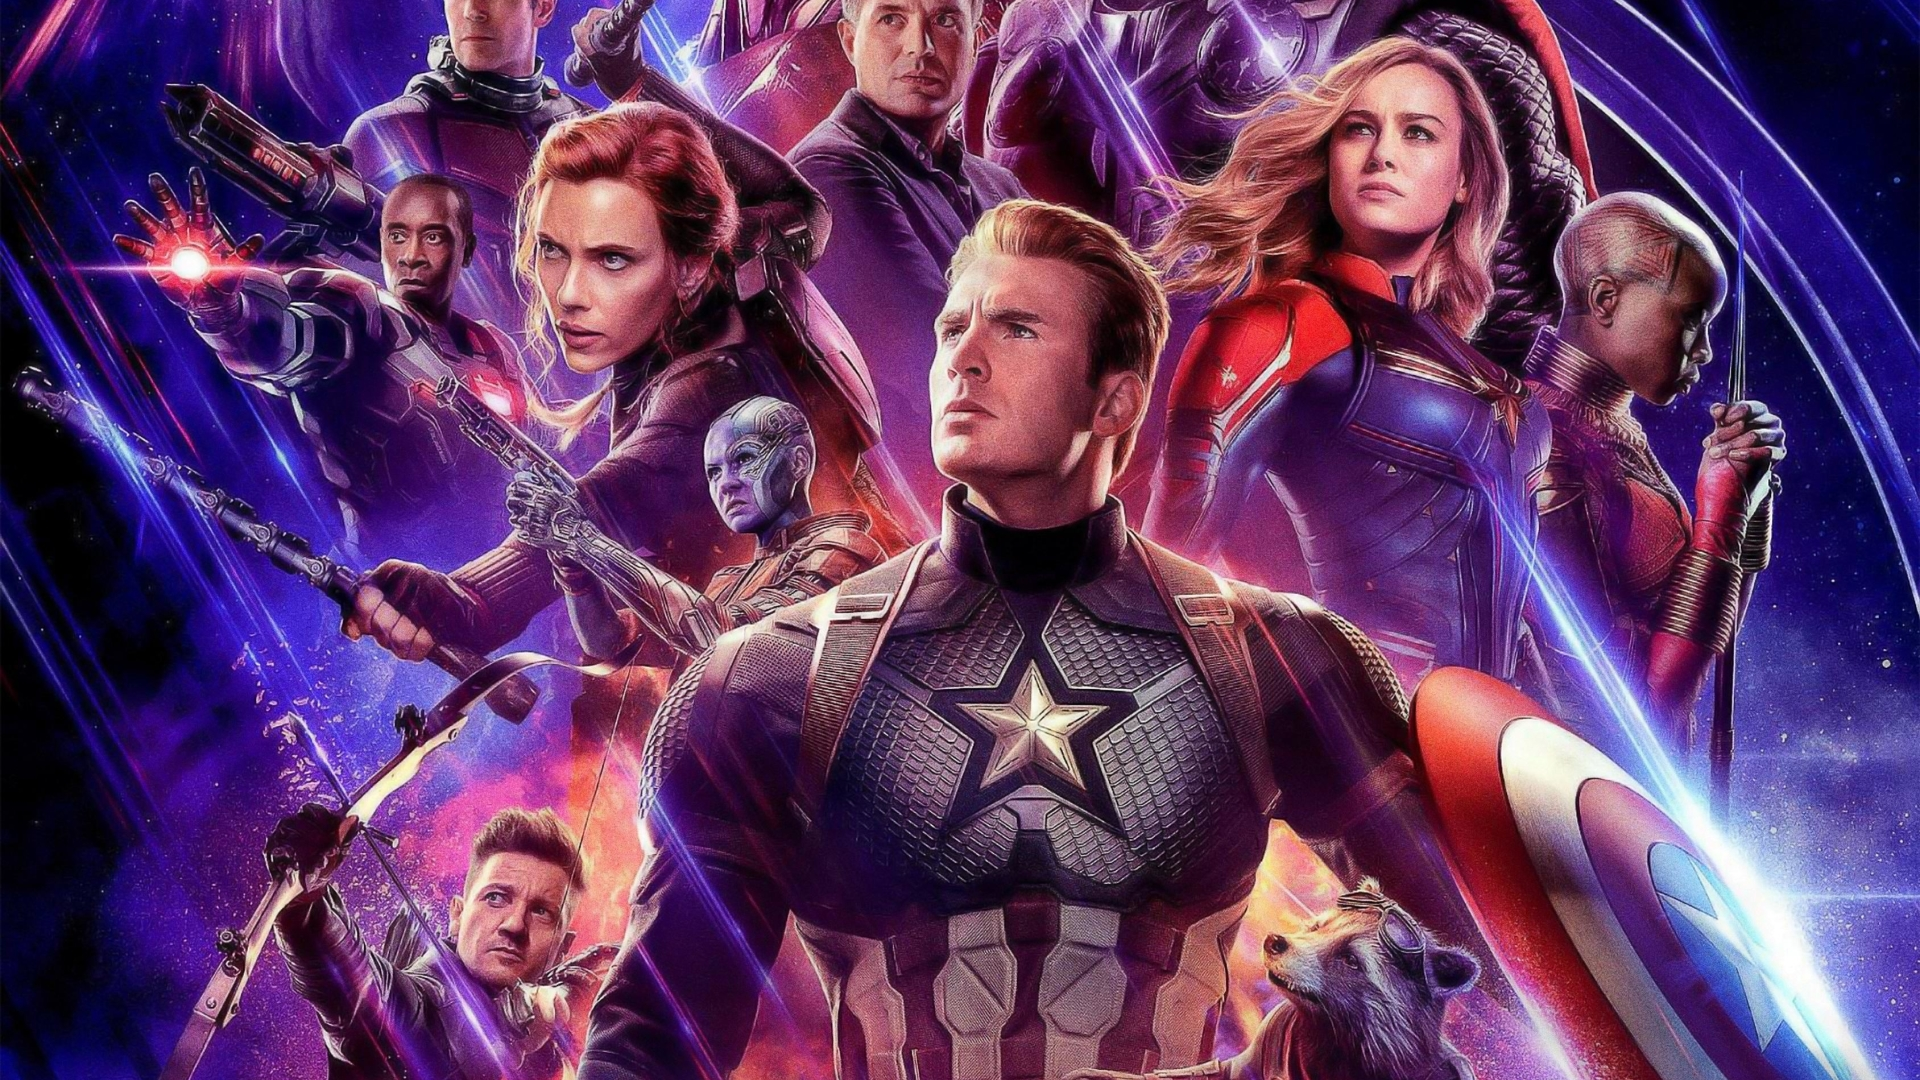 1920x1080 Poster Of Avengers Endgame Movie 1080p Laptop Full